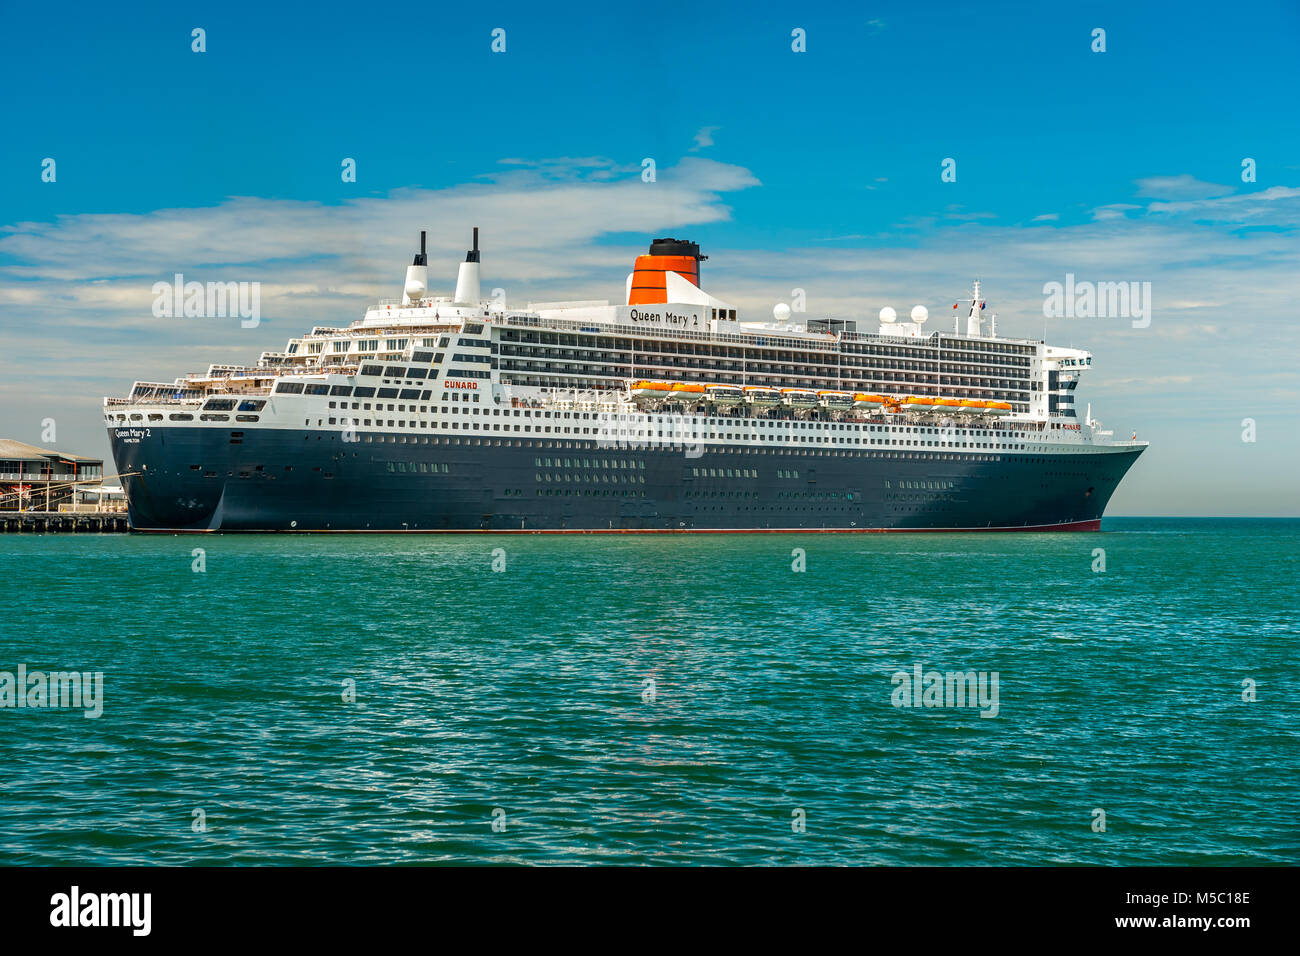 Melbourne, Australia - Queen Mary 2 cruise liner docked at Port Melbourne pier - Stock Image